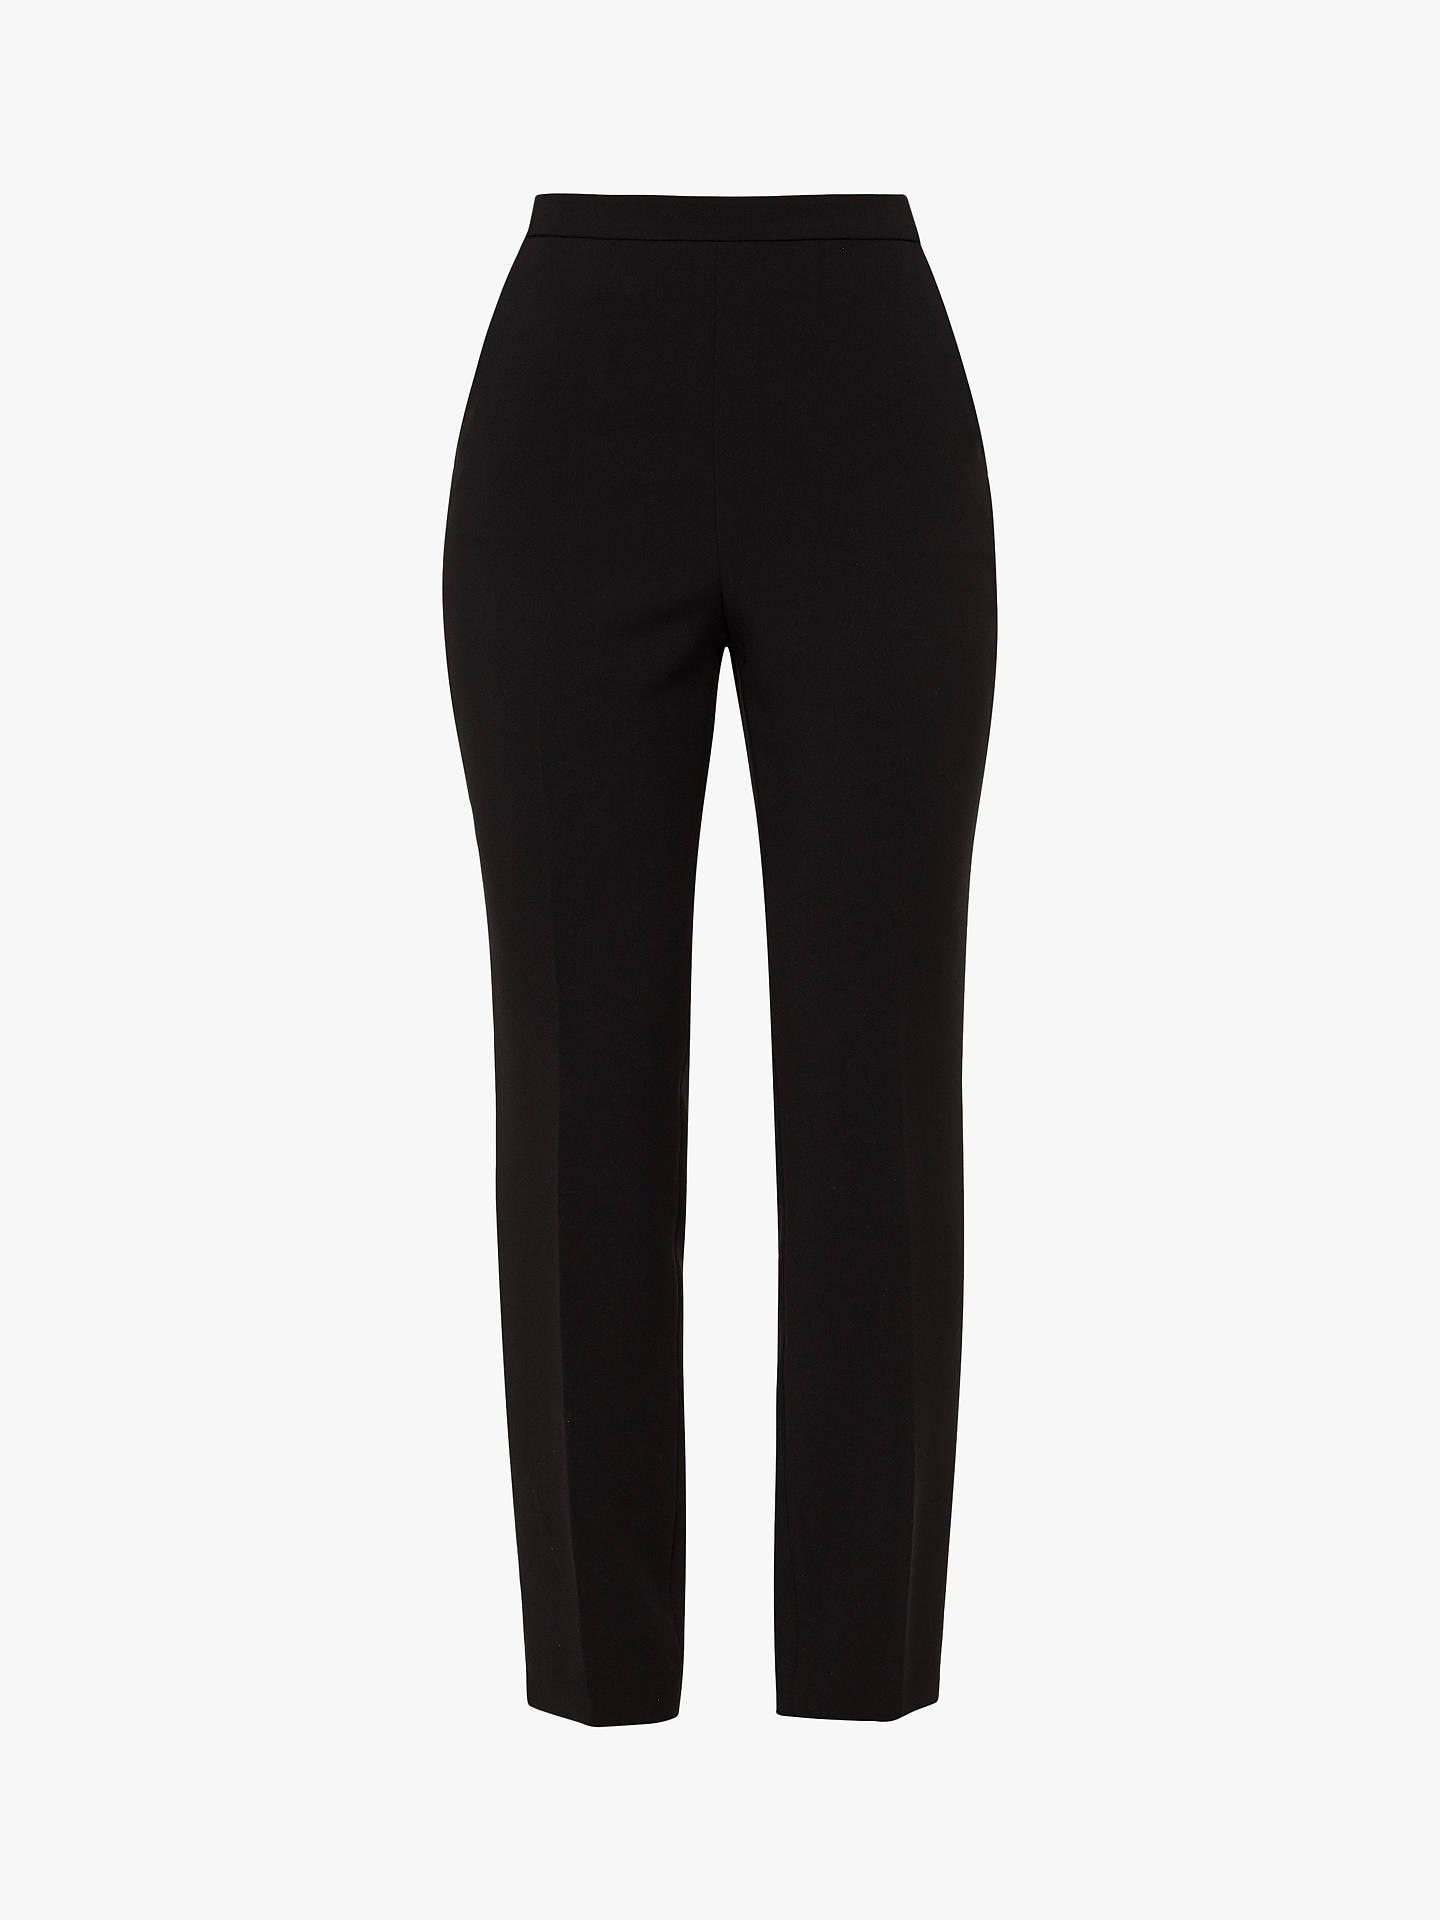 BuyTed Baker Anitat Tailored Ankle Grazer Trousers, Black, XL Online at johnlewis.com